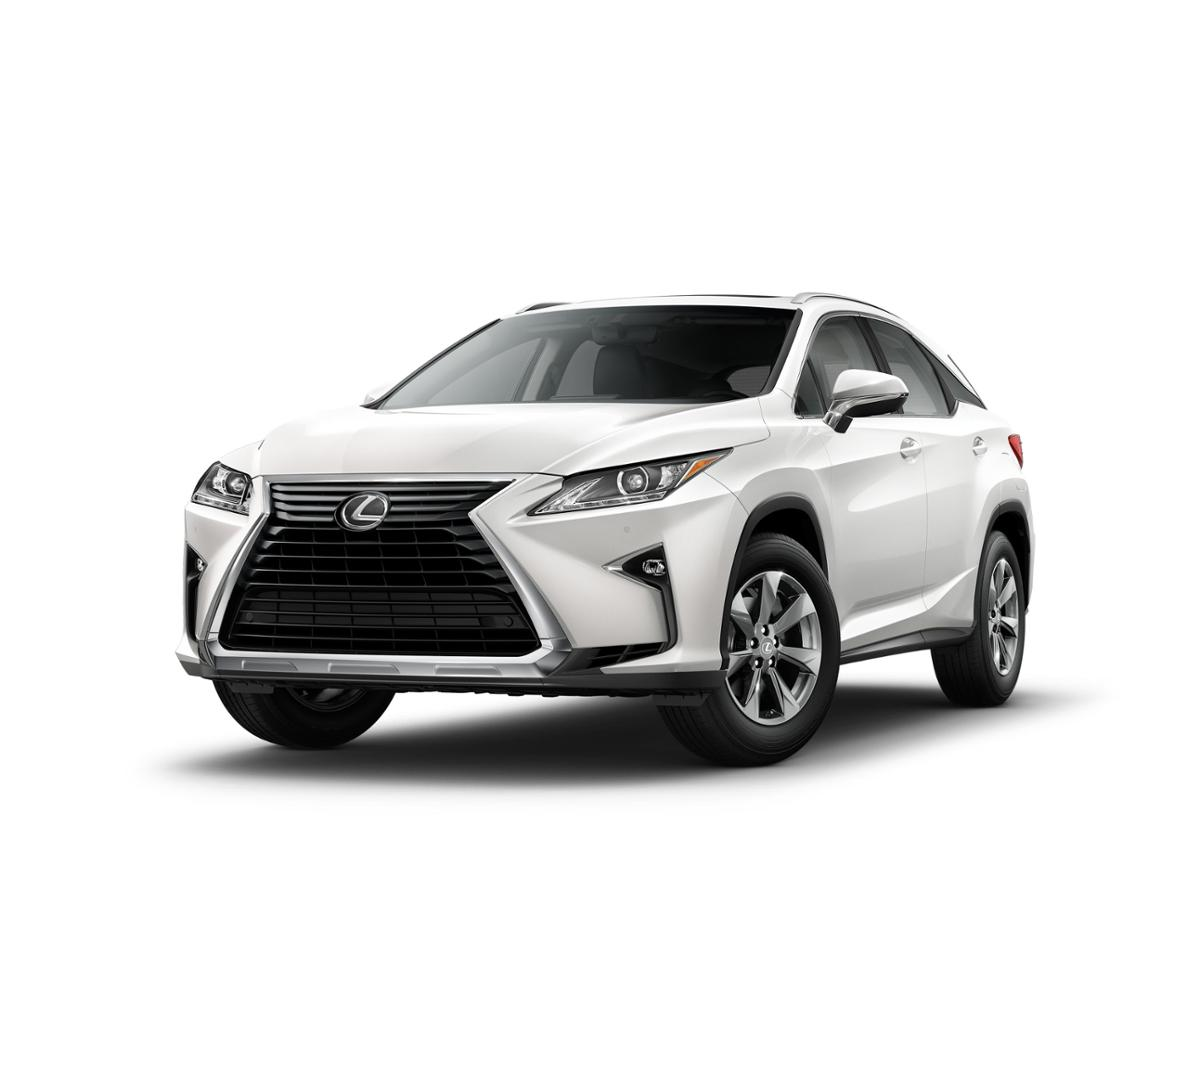 2017 Lexus RX 350 Vehicle Photo in Las Vegas, NV 89146